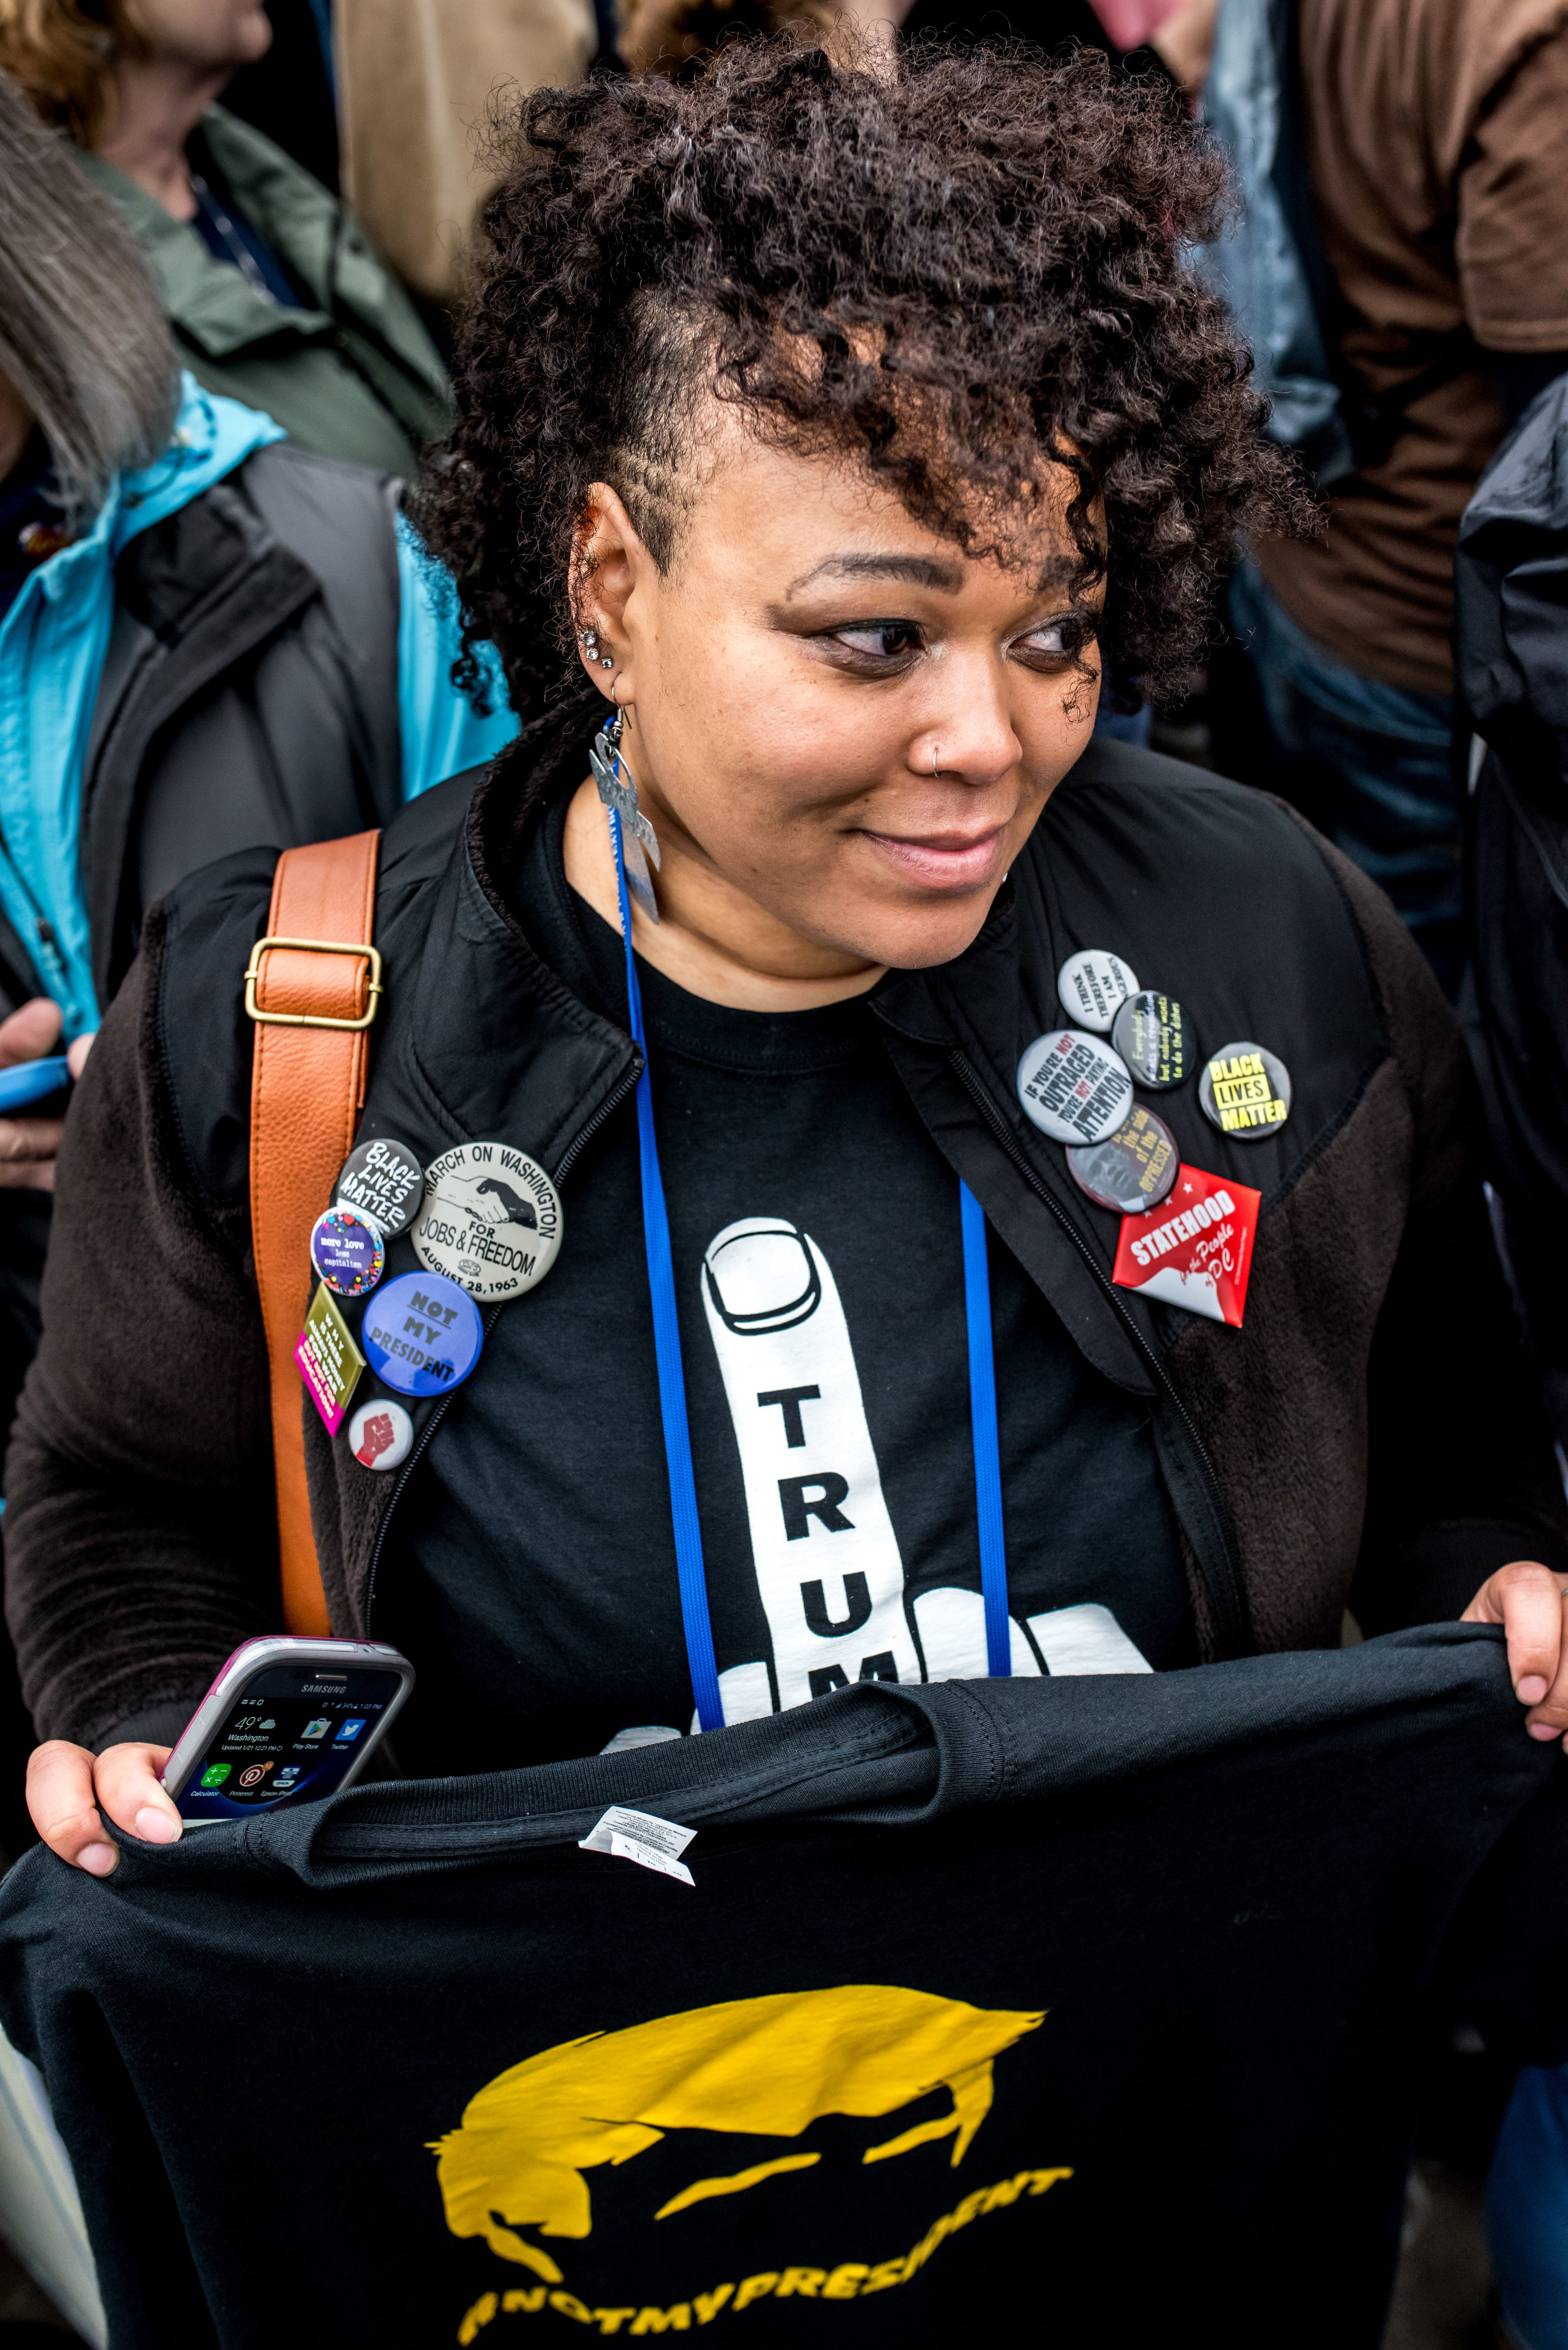 Women's-March-Photo-By-Tricia-Suriani-Ramsay-36.jpg